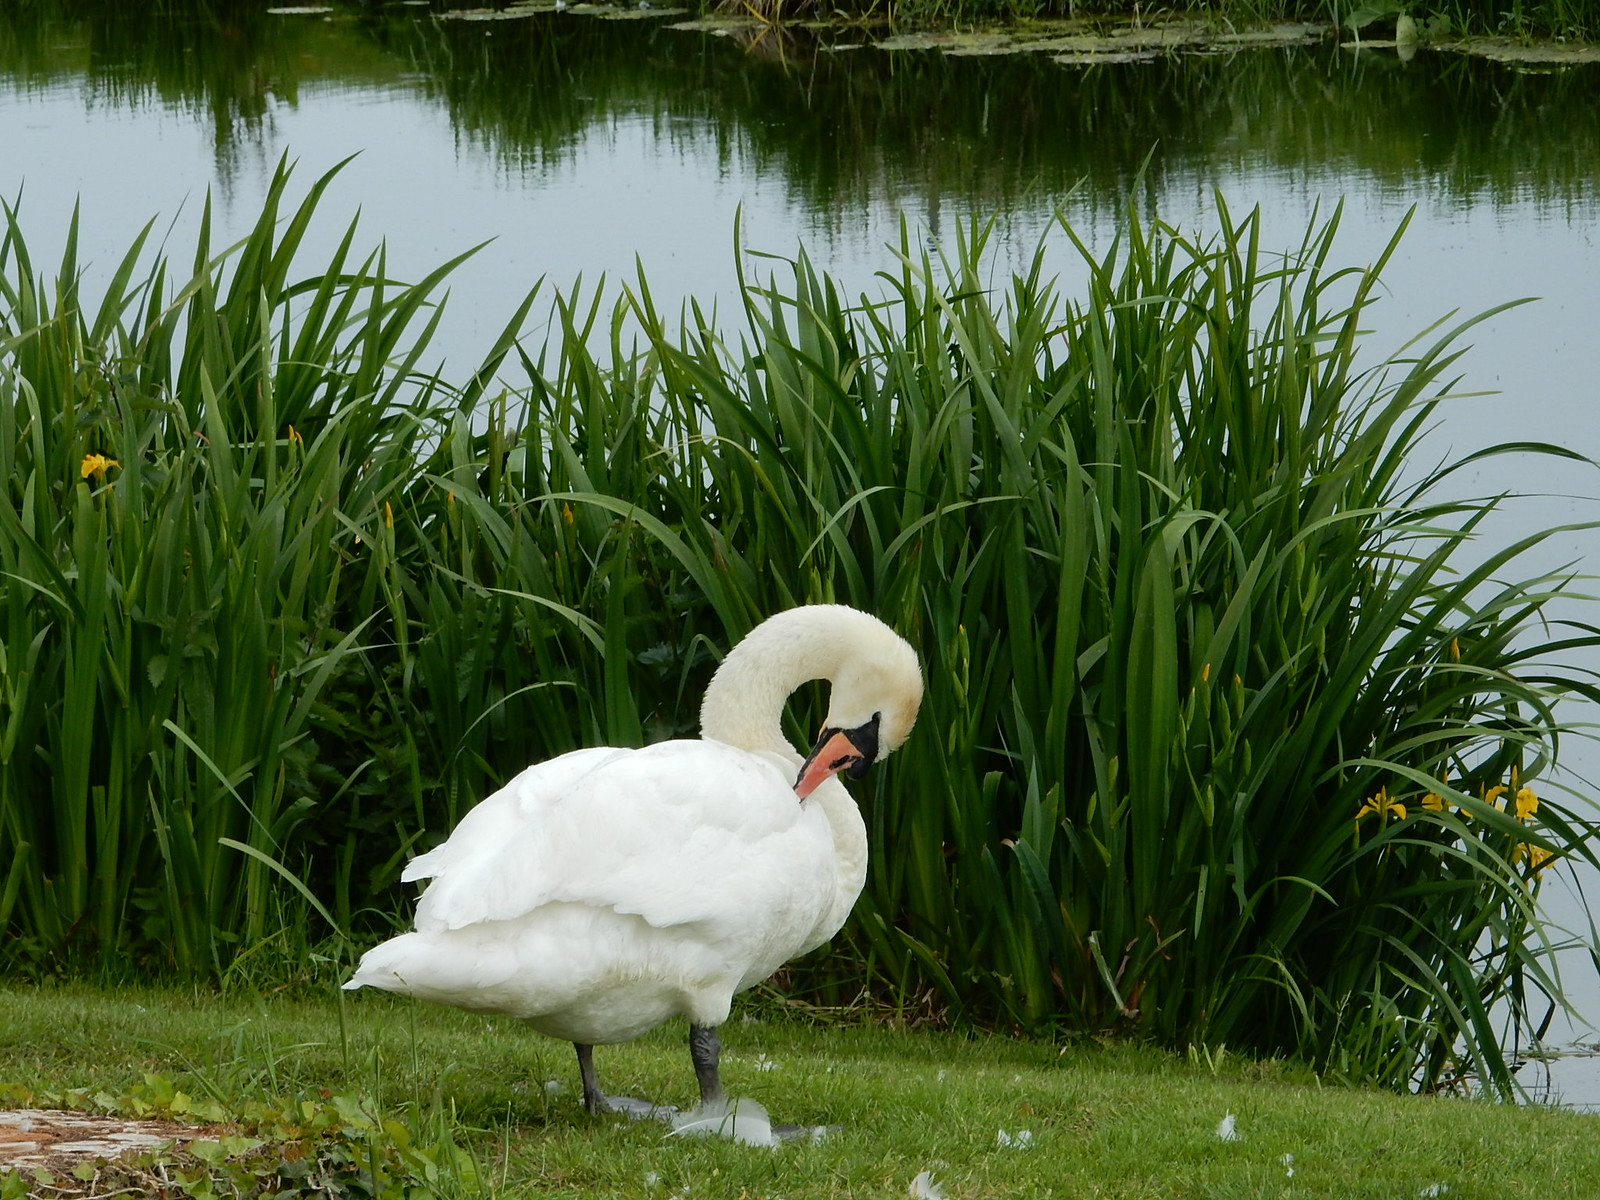 Swan at the Henny Swan.Bures to Sudbury